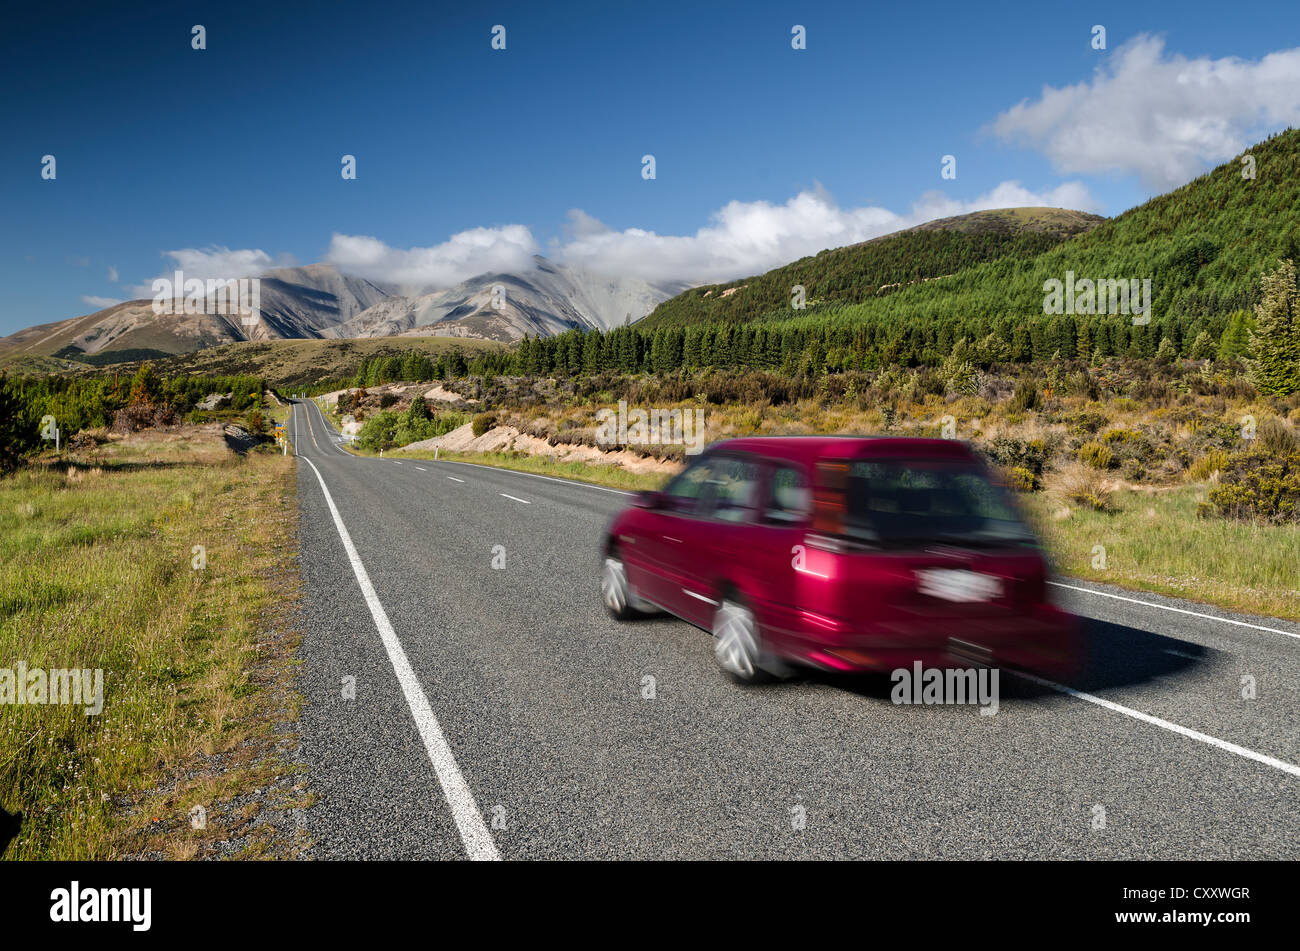 Red car driving on a country road, driving on the left, Arthur's Pass Road, South Island, New Zealand, Oceania - Stock Image